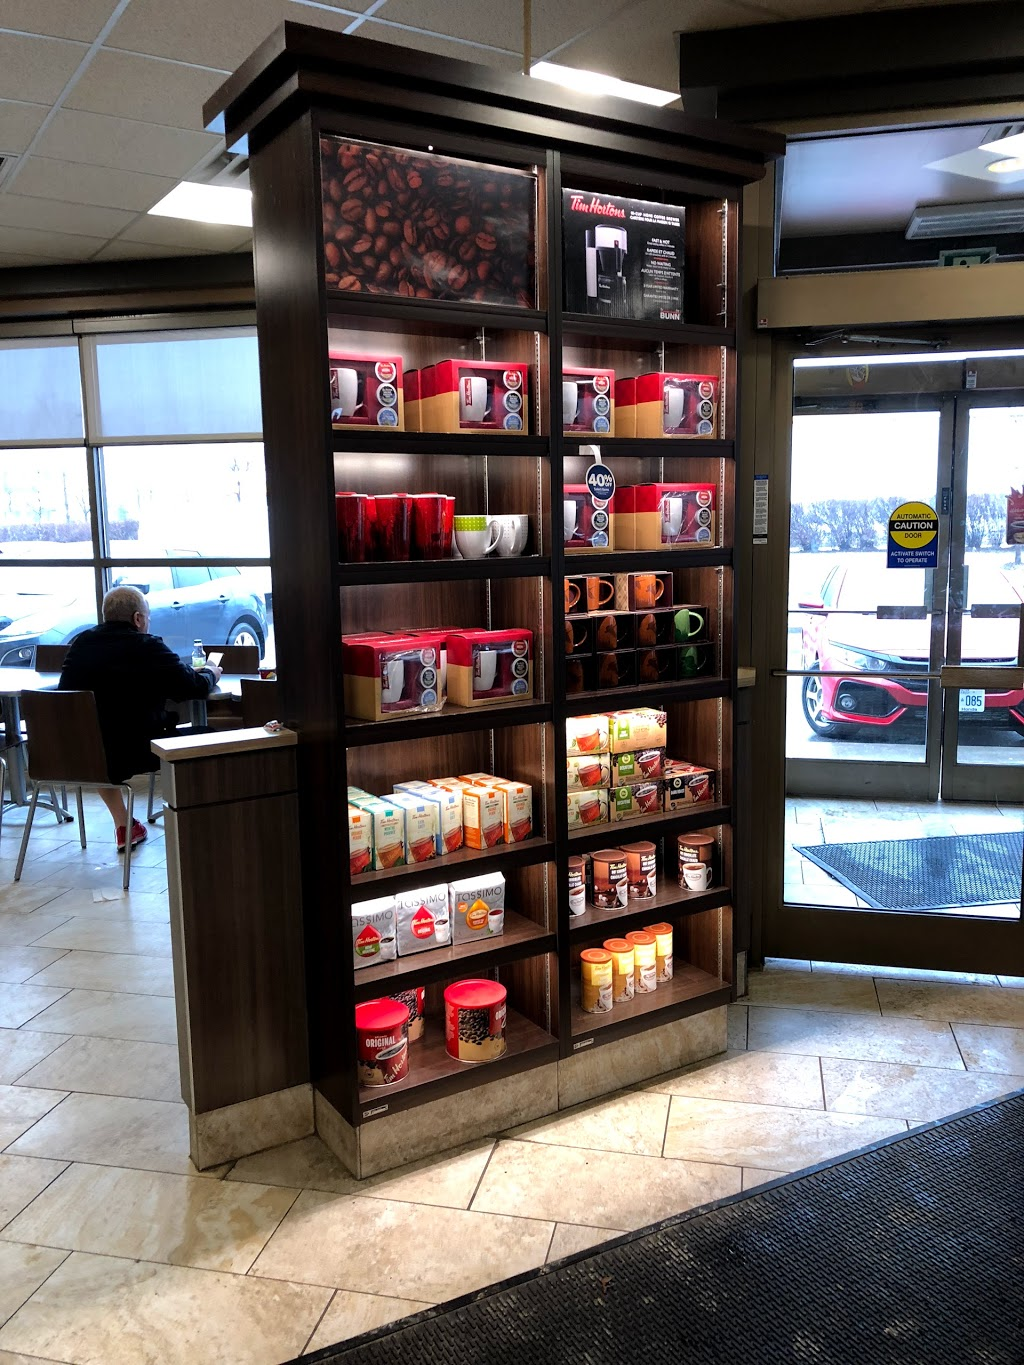 Tim Hortons | cafe | 39 Aventura Ct, Mississauga, ON L5T 3A1, Canada | 9055641414 OR +1 905-564-1414